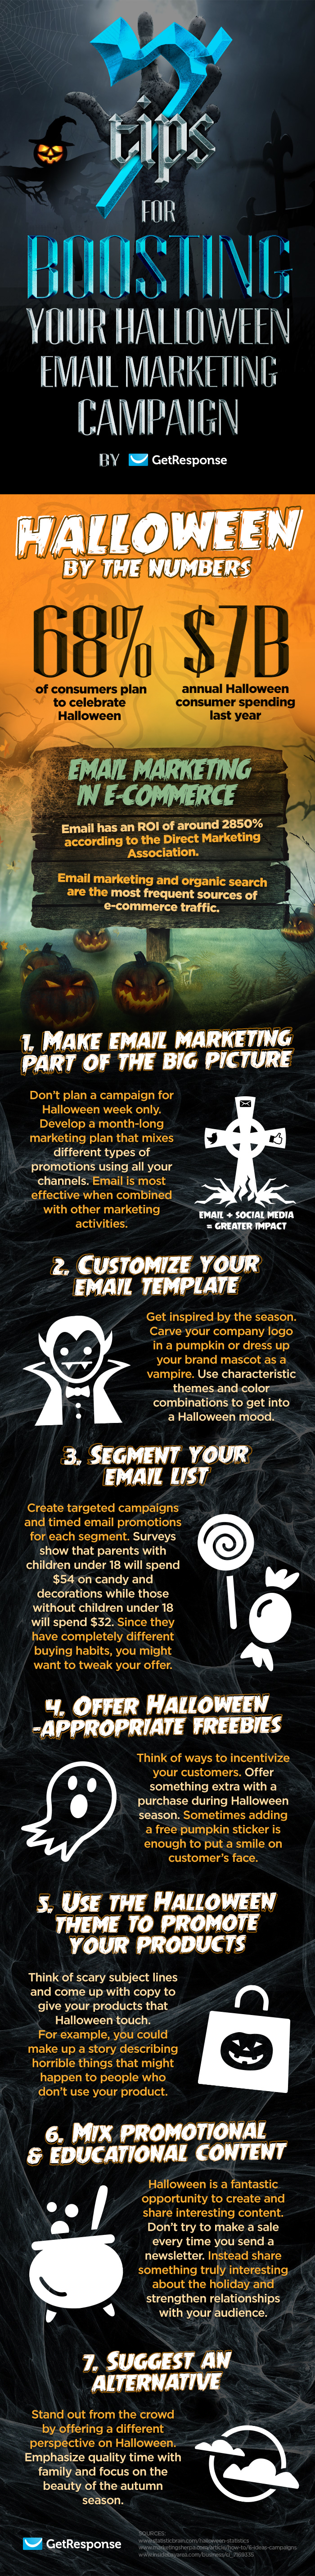 7 Tips for BOOOsting Your Halloween Email Marketing Campaign